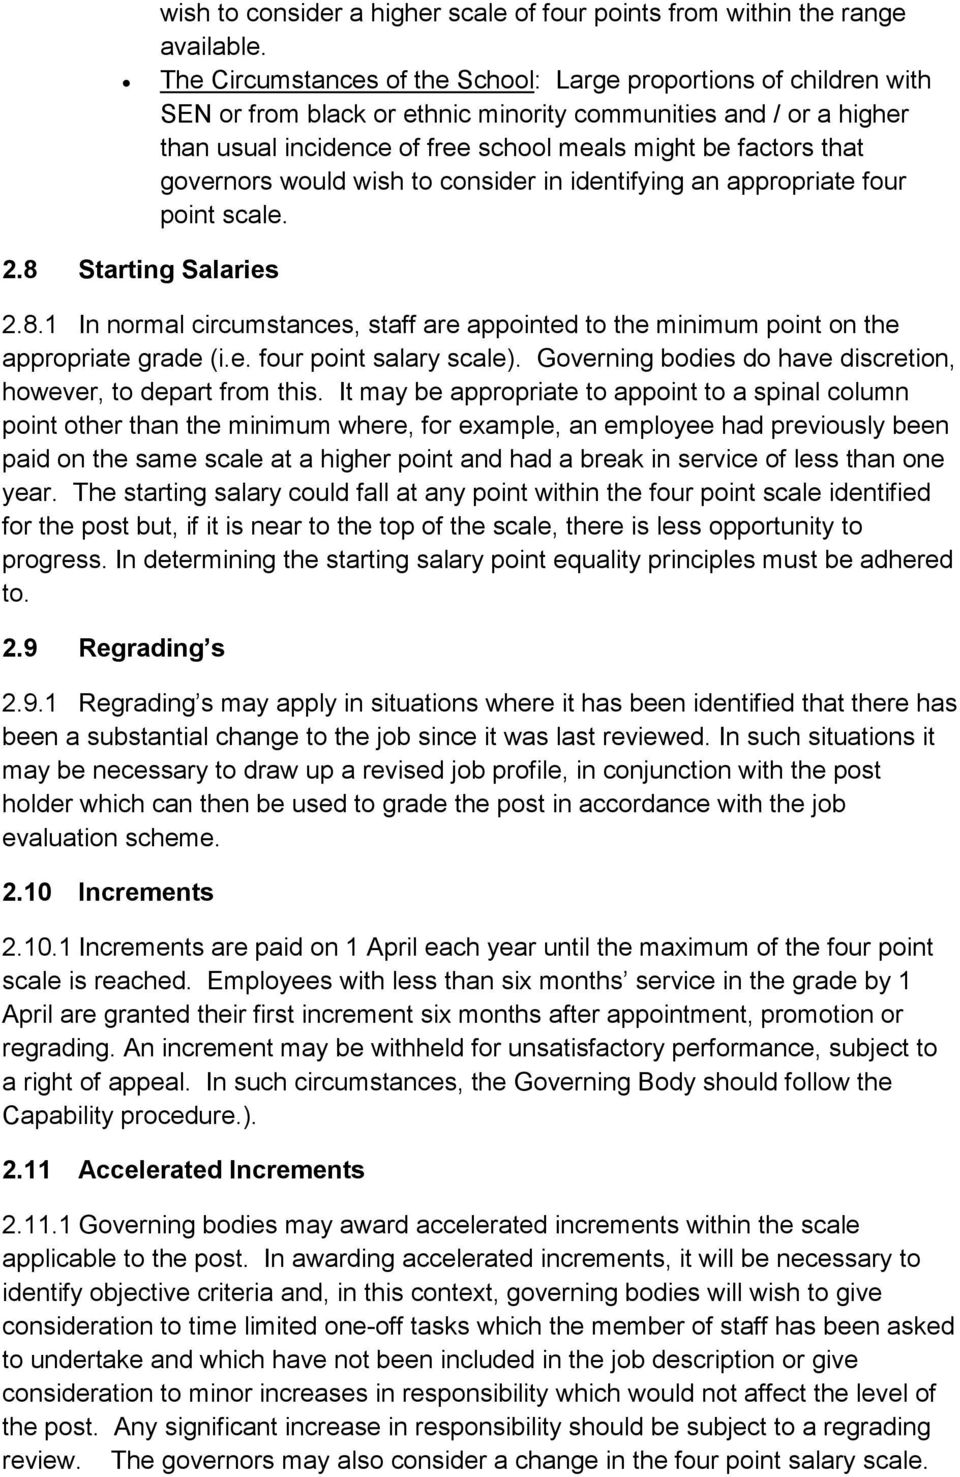 governors would wish to consider in identifying an appropriate four point scale. 2.8 Starting Salaries 2.8.1 In normal circumstances, staff are appointed to the minimum point on the appropriate grade (i.